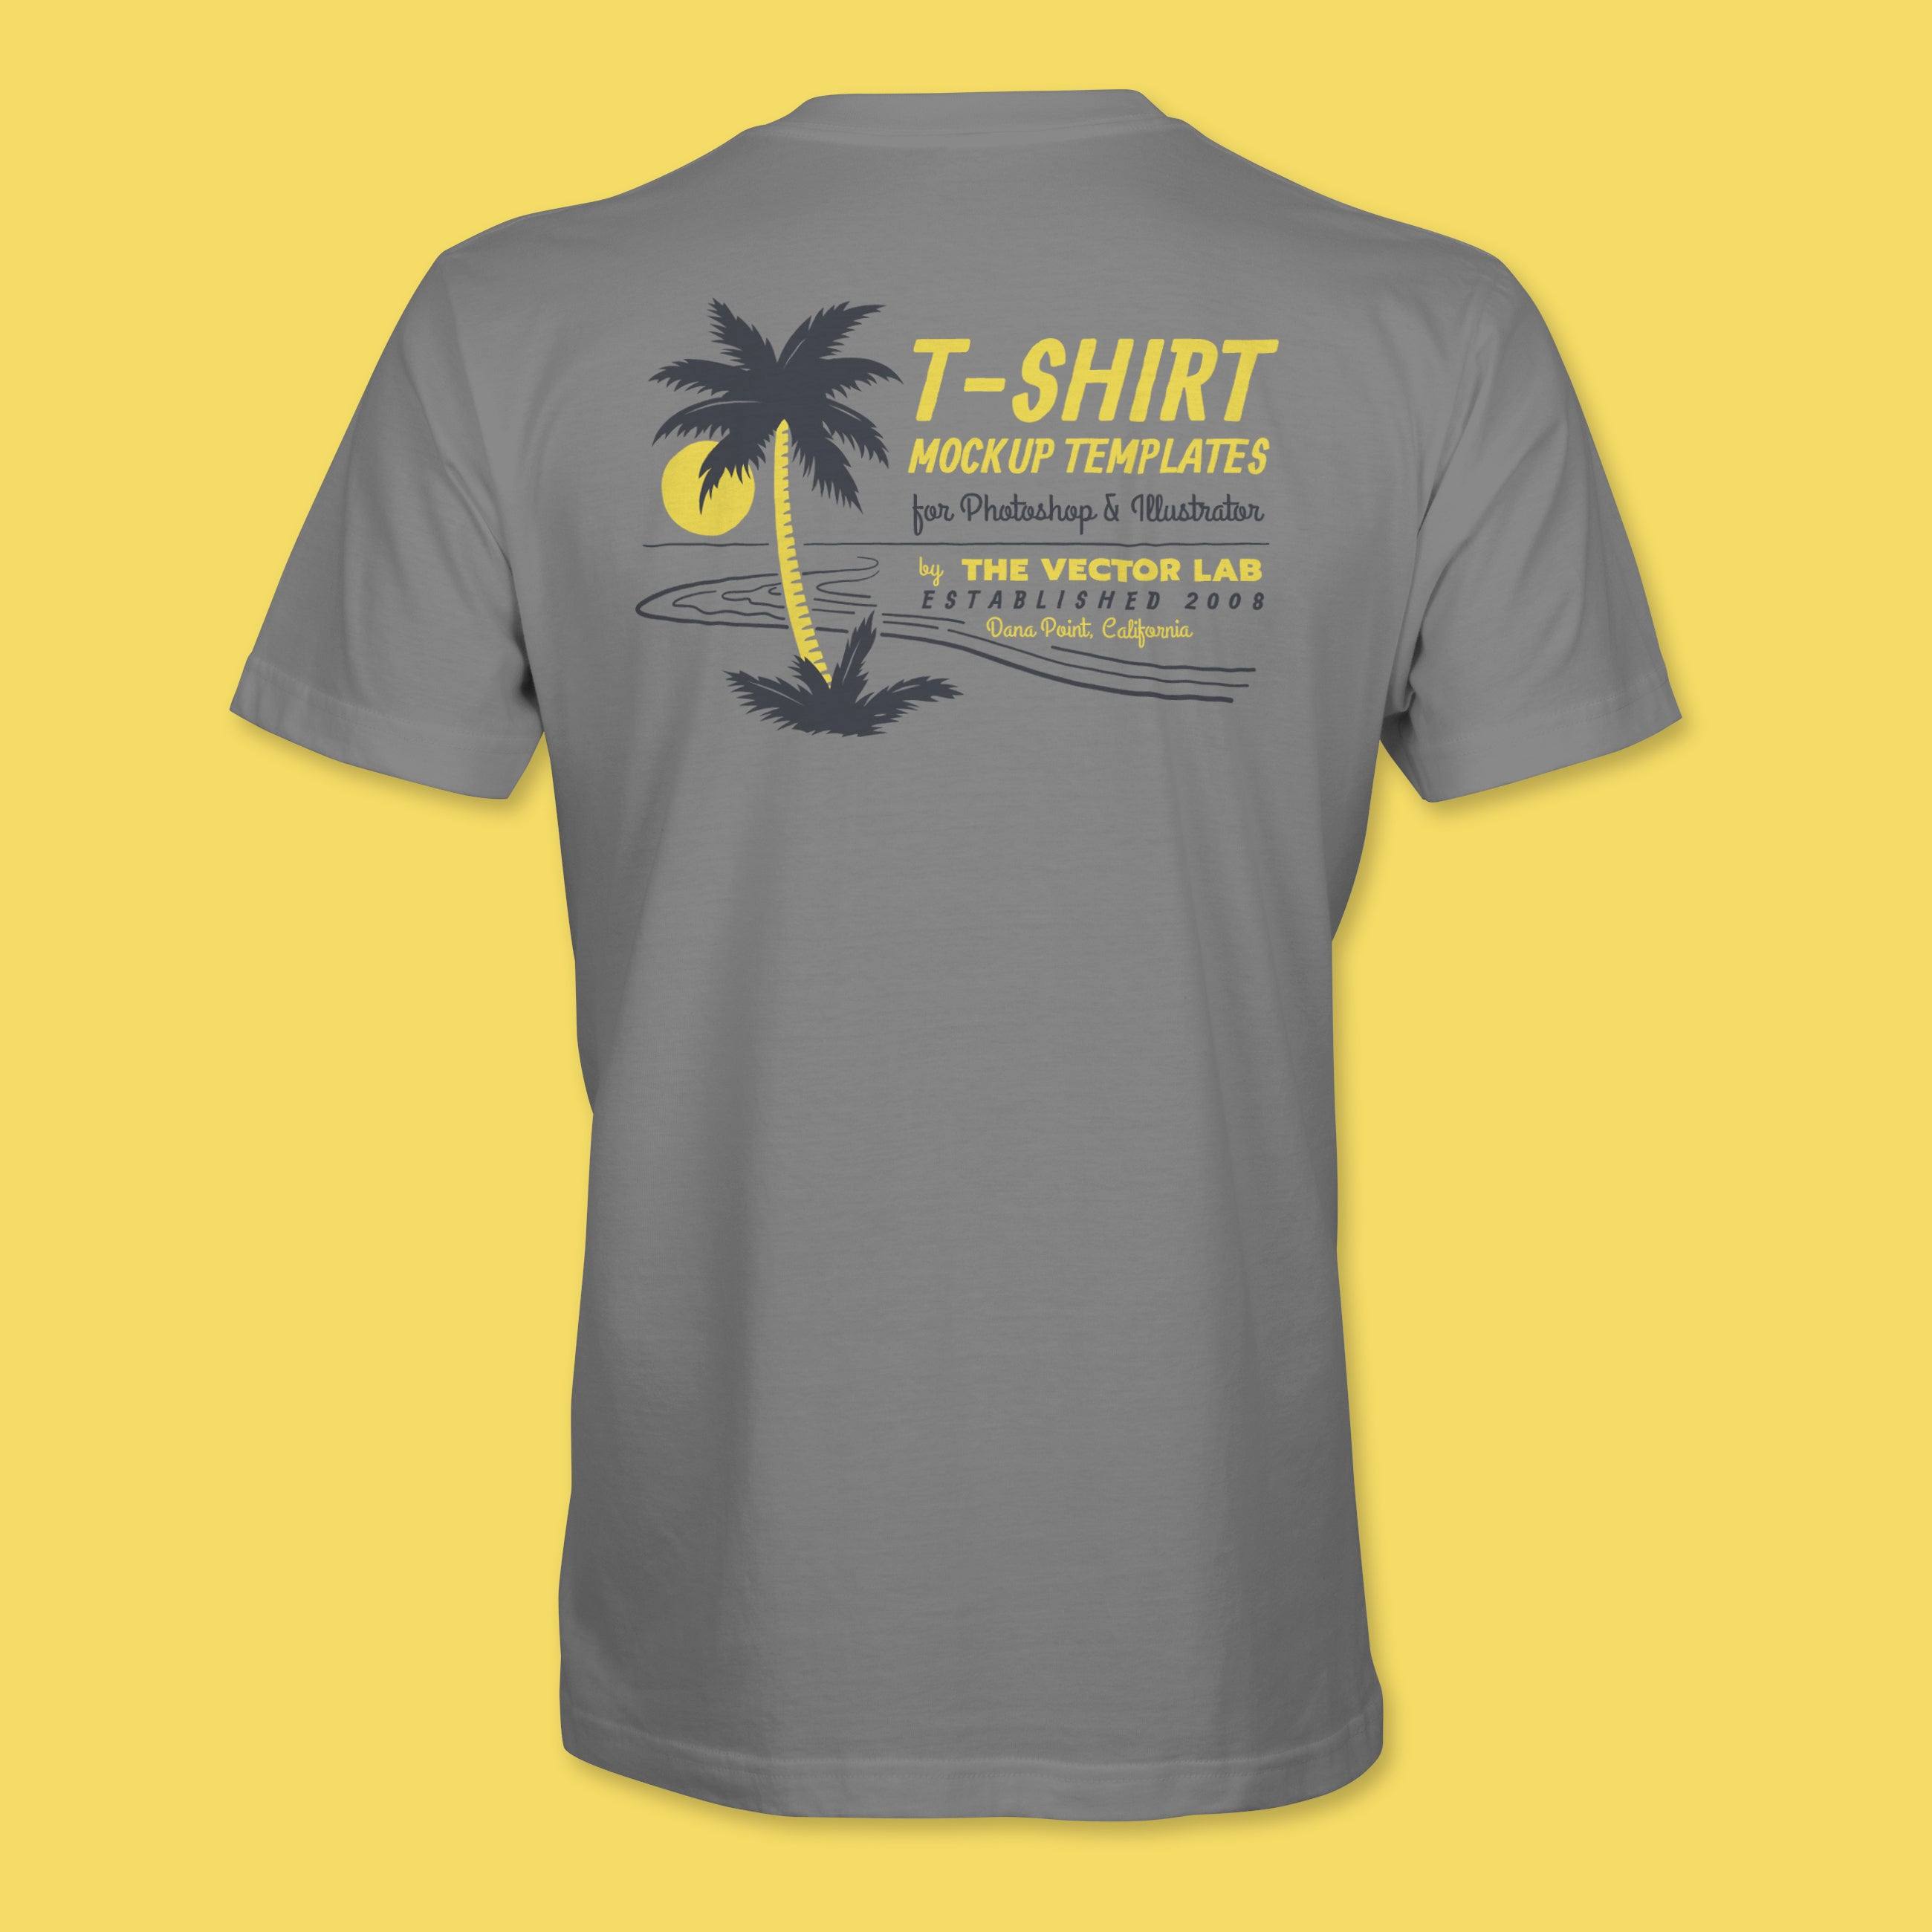 674499ecf ... Men's T-Shirt Mockup Templates for Photoshop and Illustrator ...